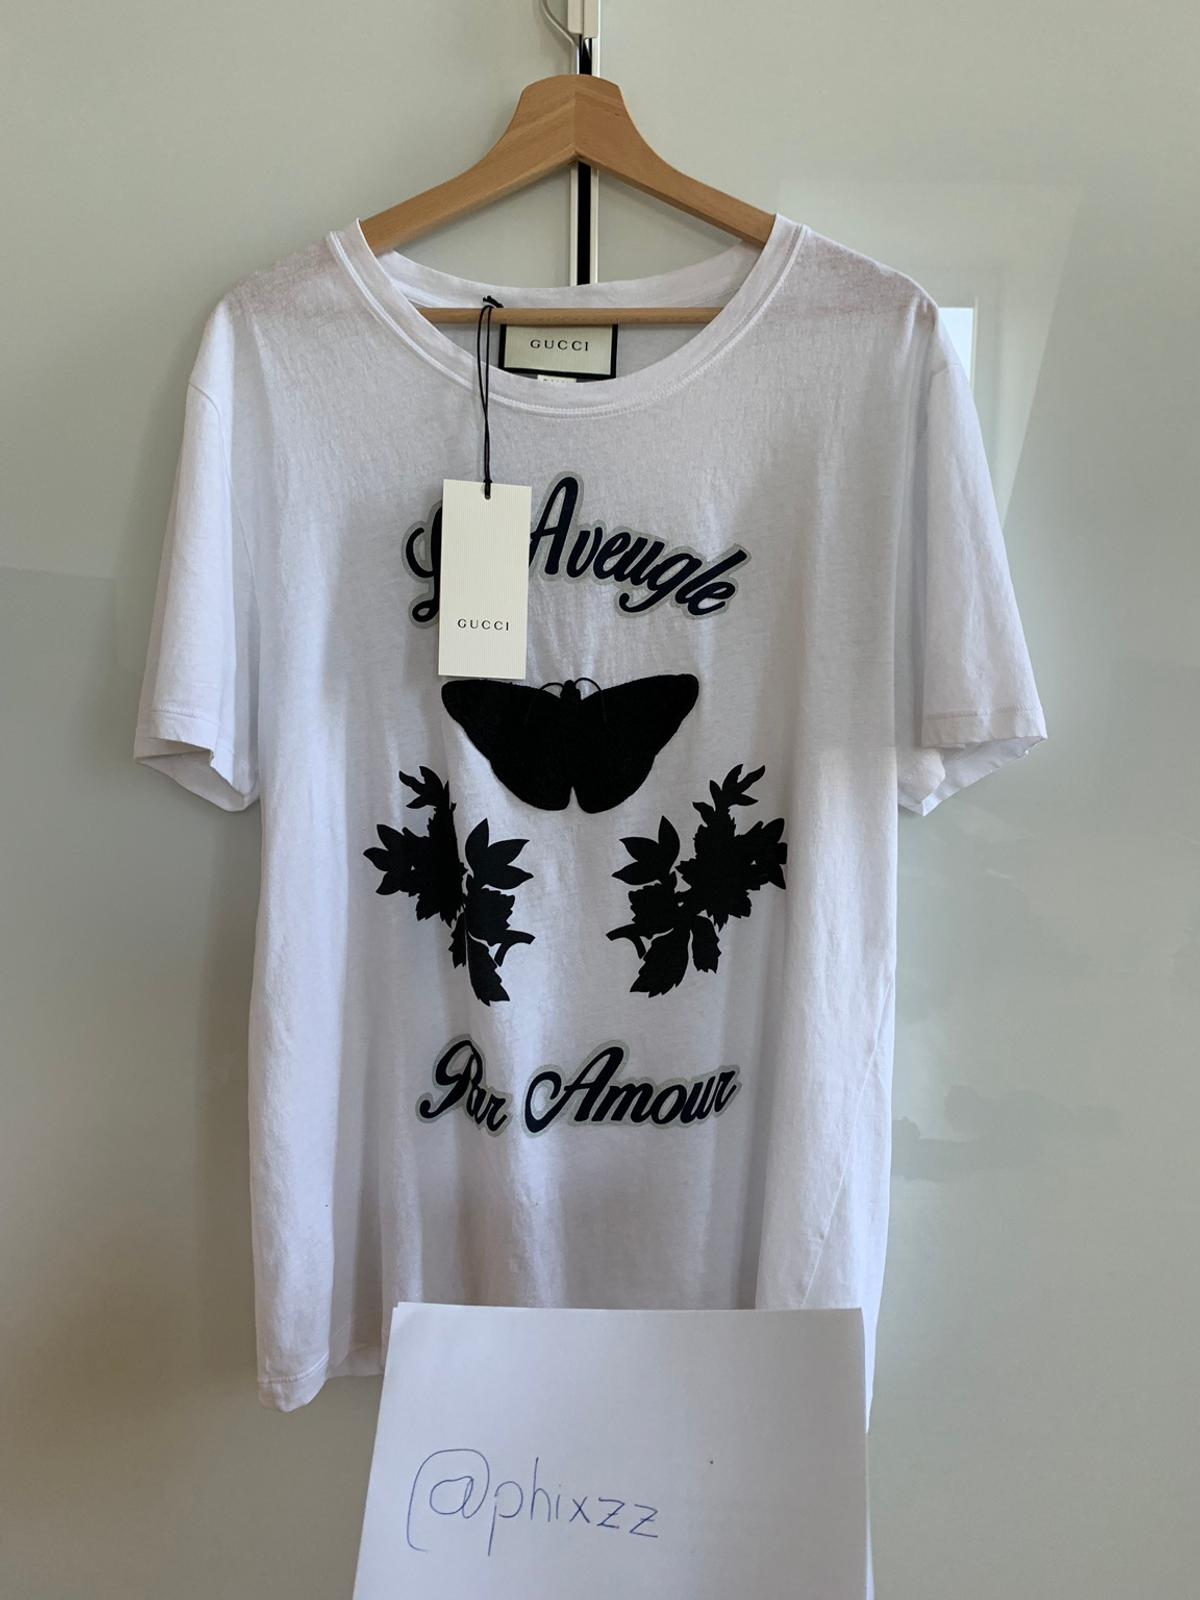 a4c87e677eb Gucci T-shirt in 2013 Göllersdorf for €195.00 for sale - Shpock